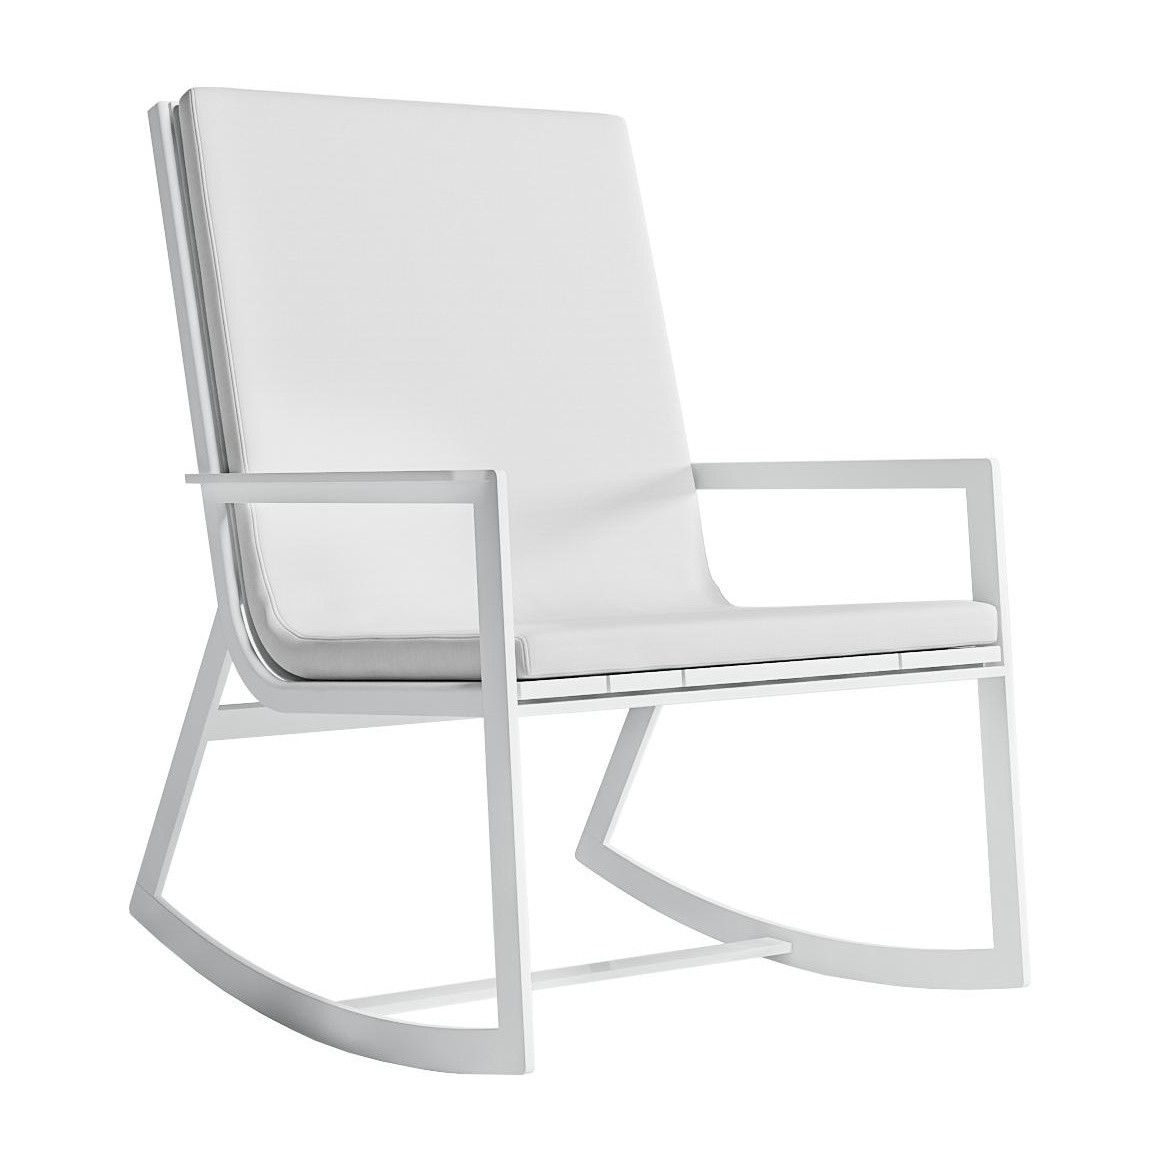 gandia blasco flat rocking chair ambientedirect rh ambientedirect com